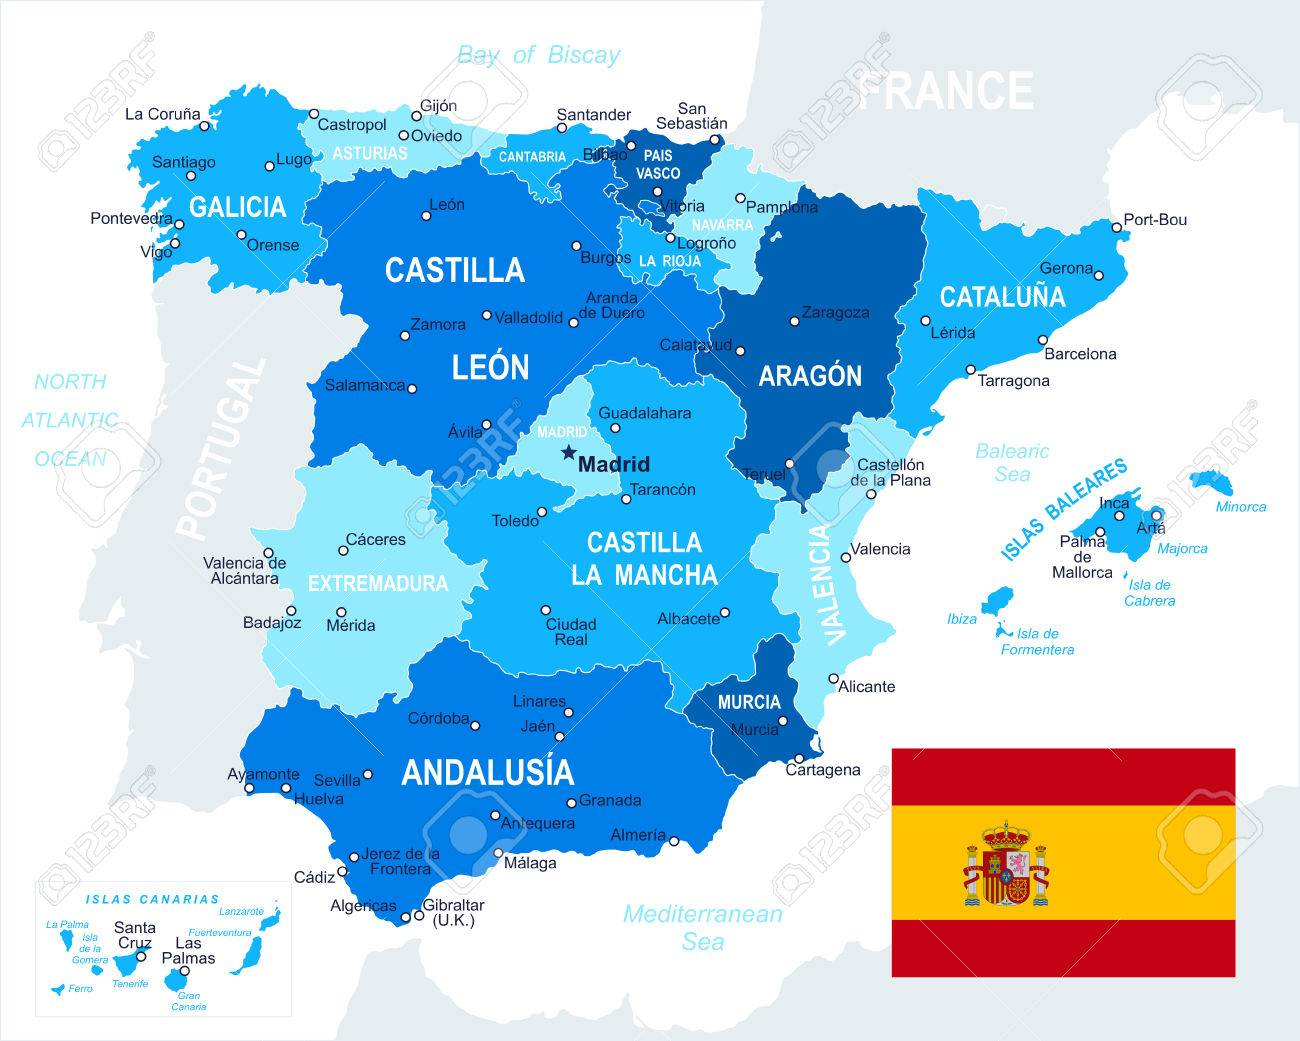 Spain map and flag highly detailed vector illustration - 41764854